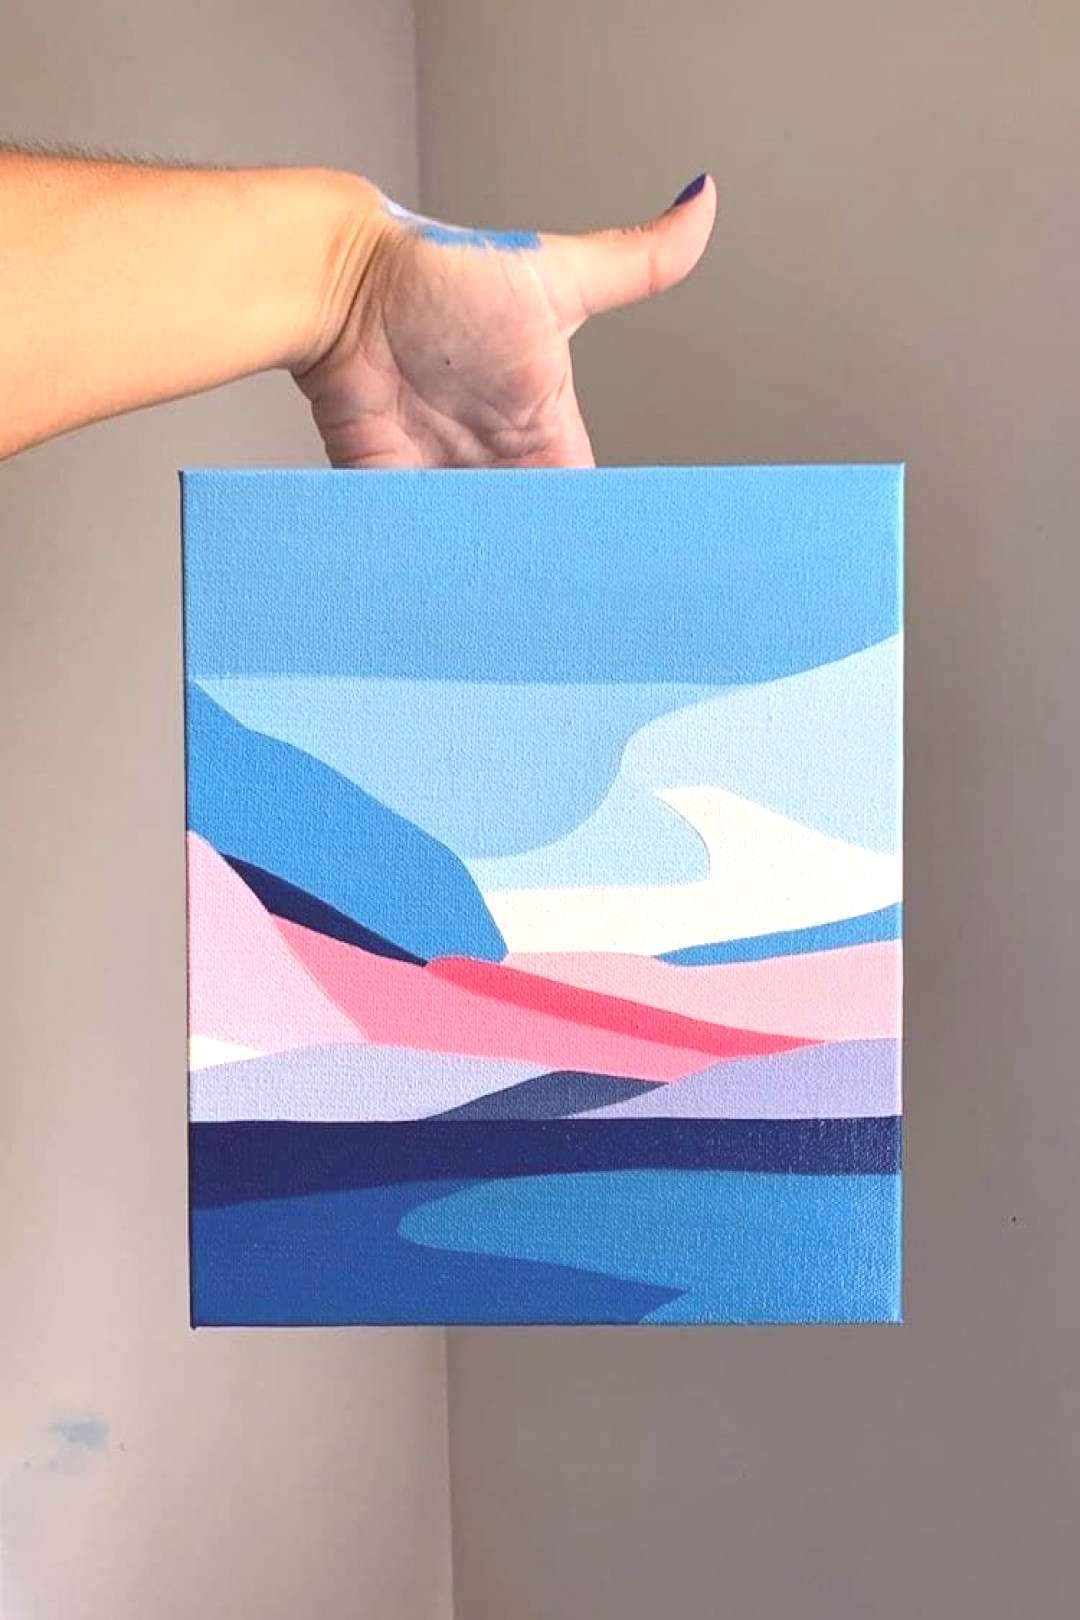 Abstract Landscape Paintings Capture the Beauty of Beaches